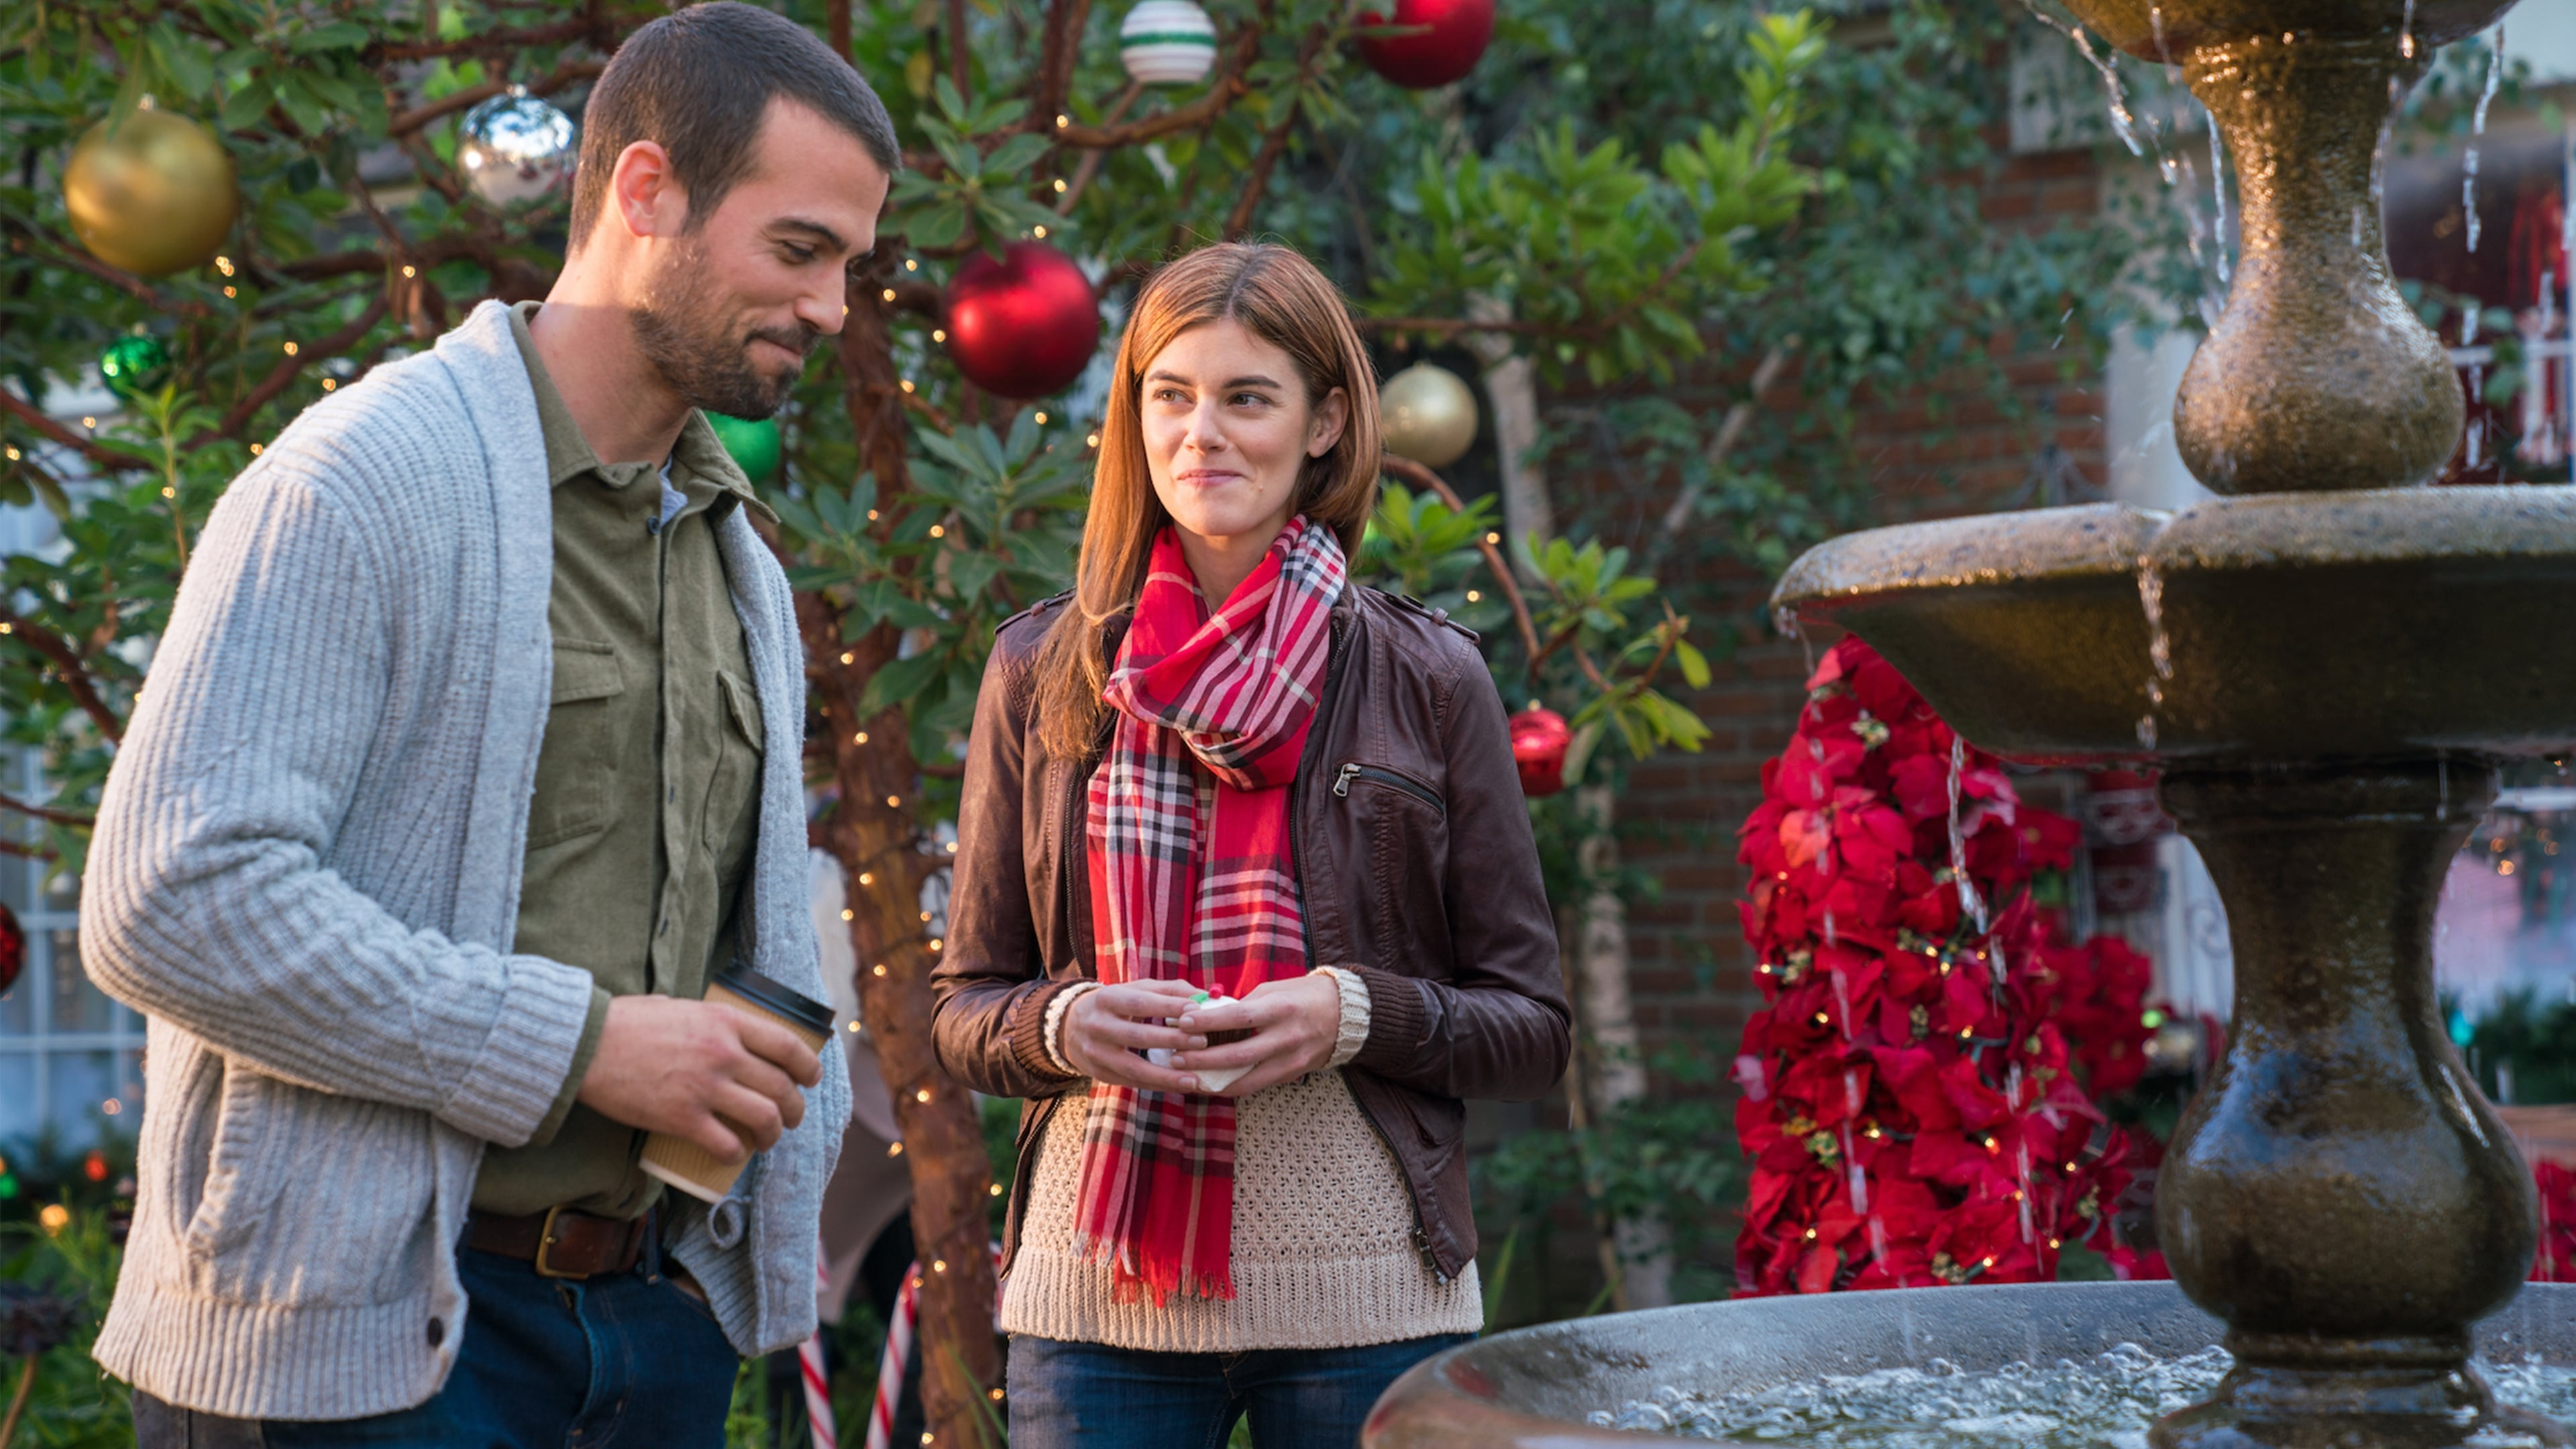 The Trouble with Mistletoe Trailer